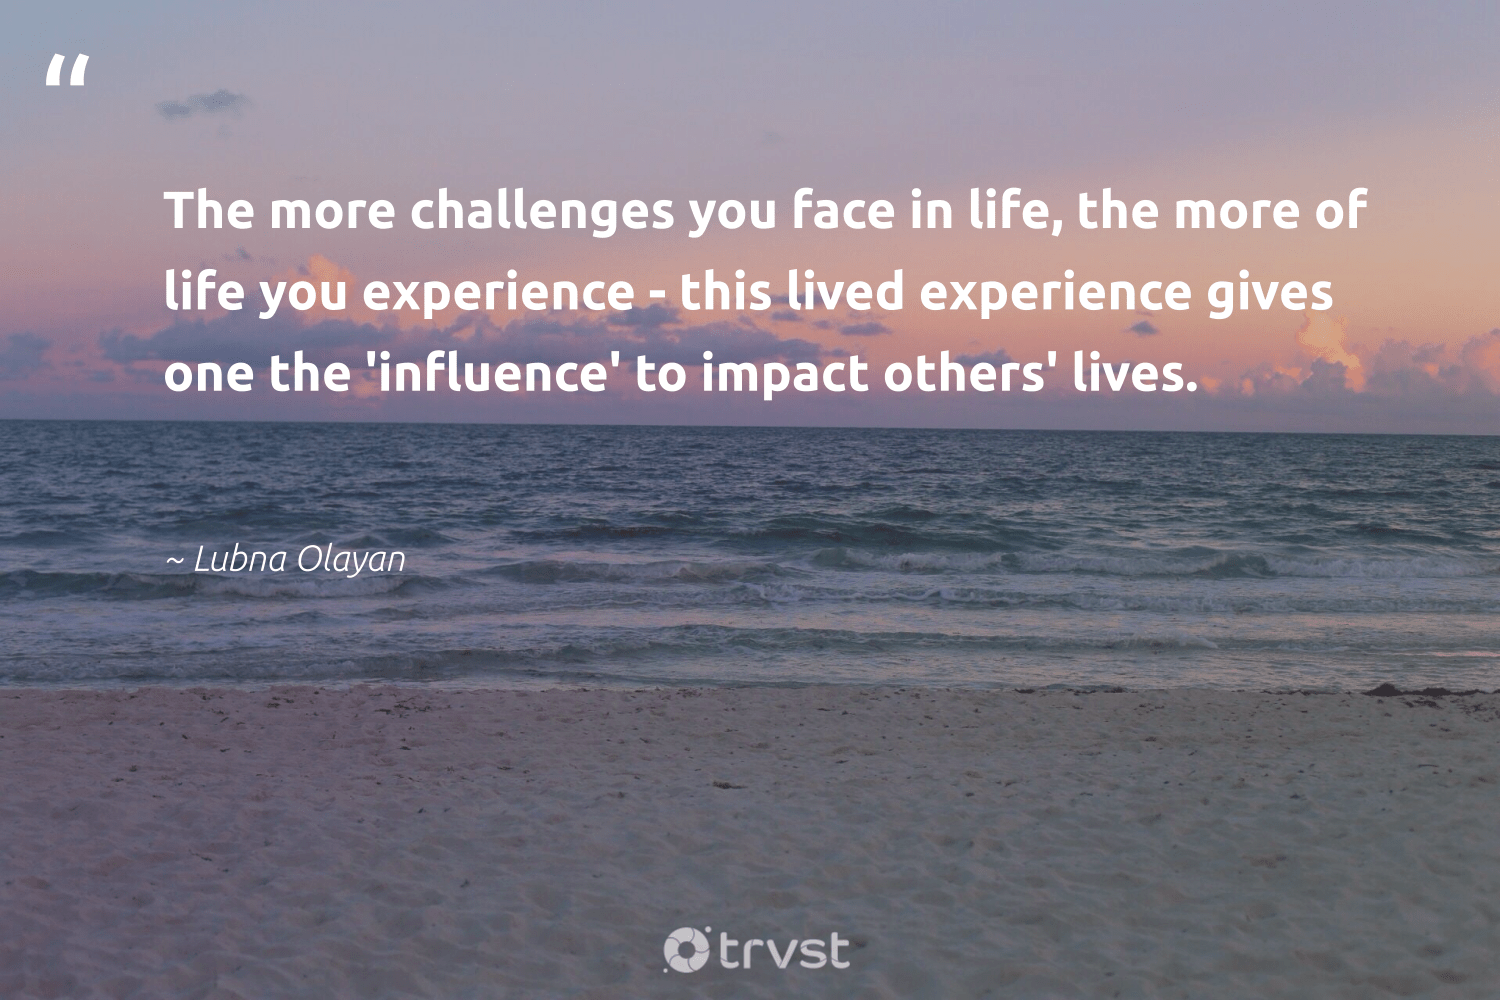 """The more challenges you face in life, the more of life you experience - this lived experience gives one the 'influence' to impact others' lives.""  - Lubna Olayan #trvst #quotes #impact #influence #socialchange #gogreen #betterplanet #bethechange #ethicalbusiness #dogood #weareallone #takeaction"